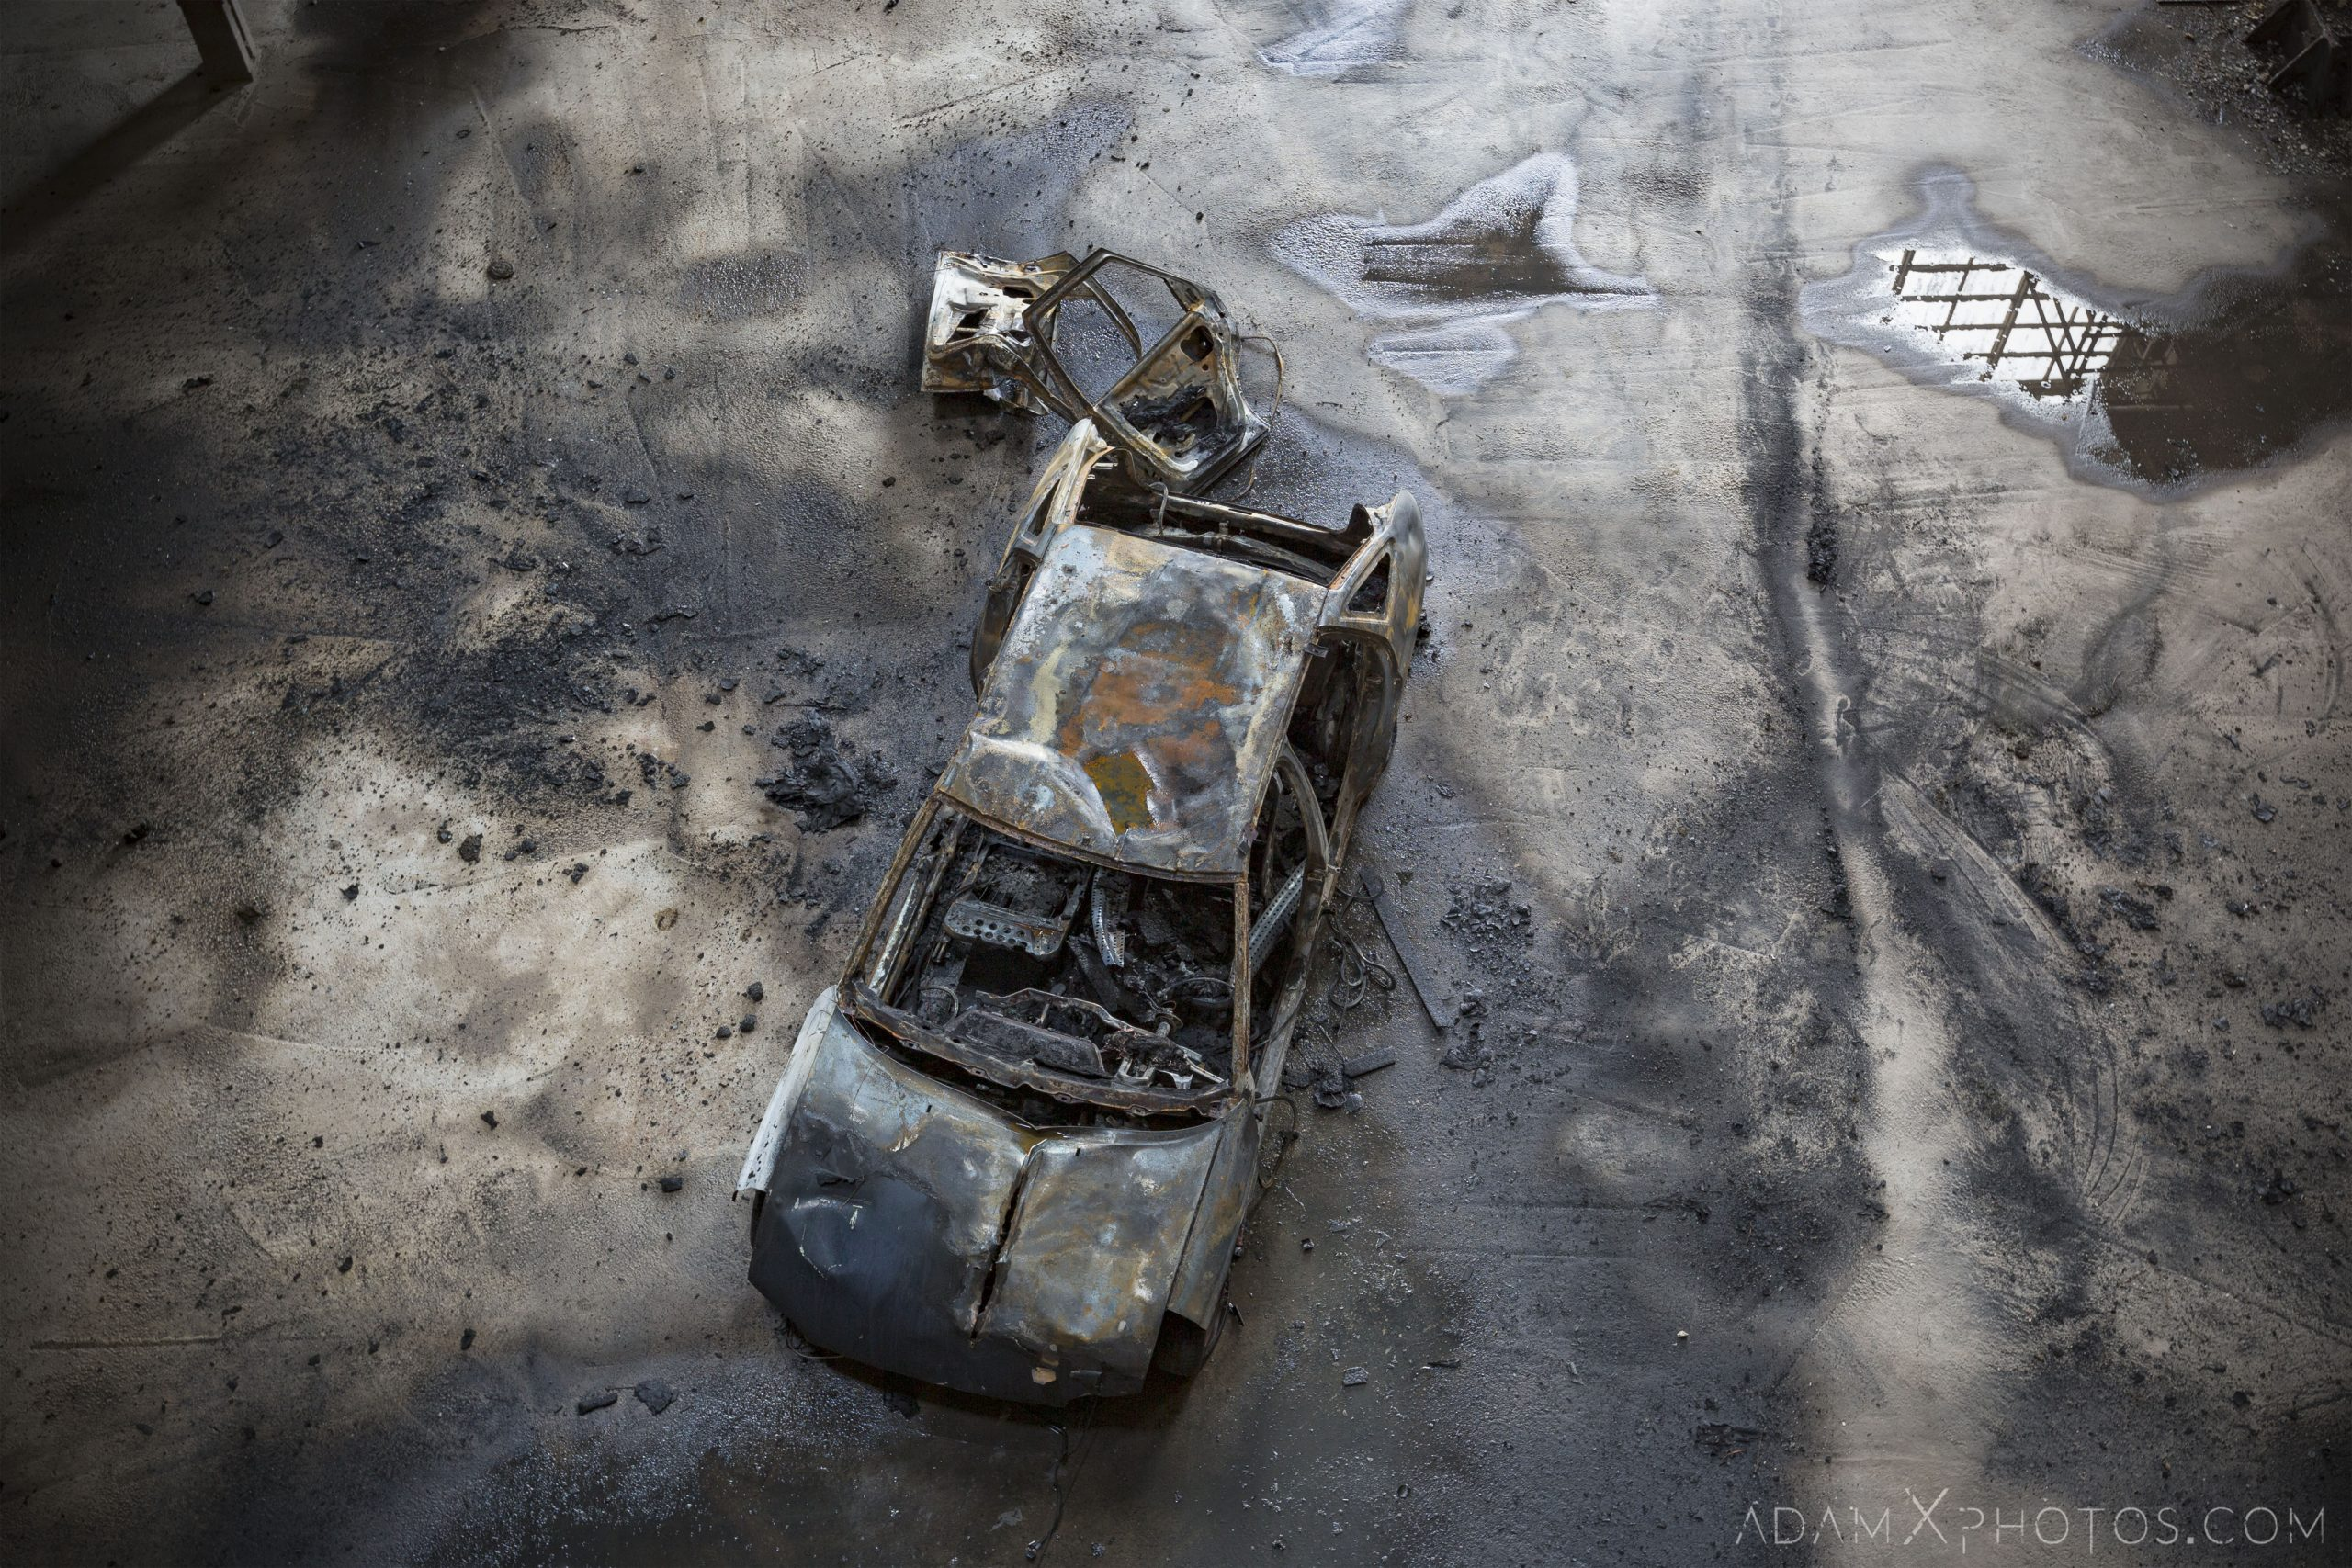 burnt out car industry industrial rusty rusting Bladerunner Blade Runner 2049 Powerplant Inota Shephard's Power Plant Hungary Adam X Urbex Urban Exploration Access 2018 Abandoned decay ruins lost forgotten derelict location creepy haunting eerie security